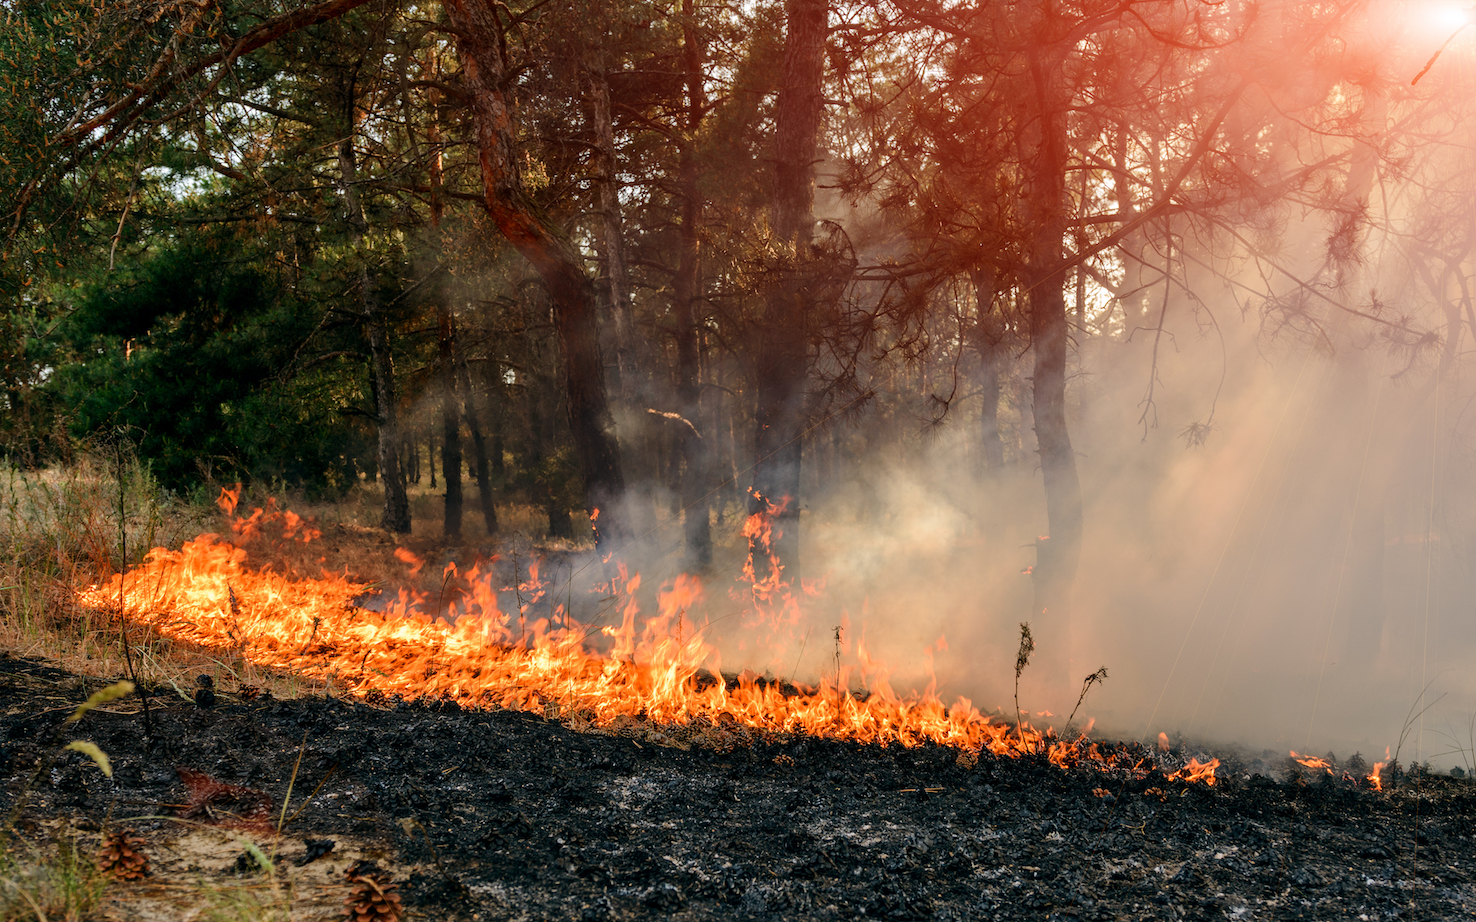 Researchers at NASA have found that wet winters lead to more small wildfires in the fire season that follows.